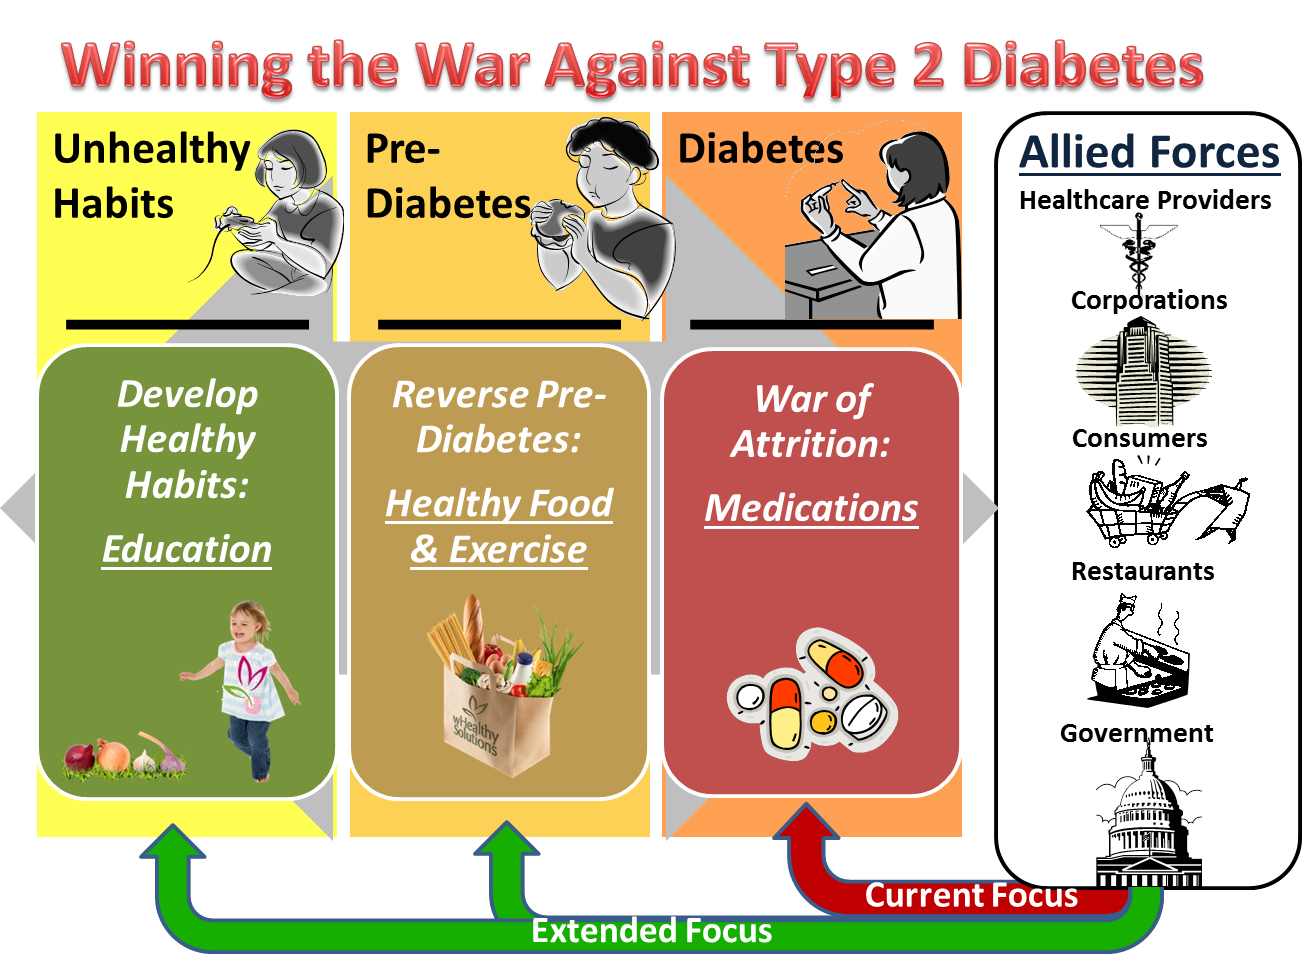 How do diet and exercise help control type 2 diabetes?